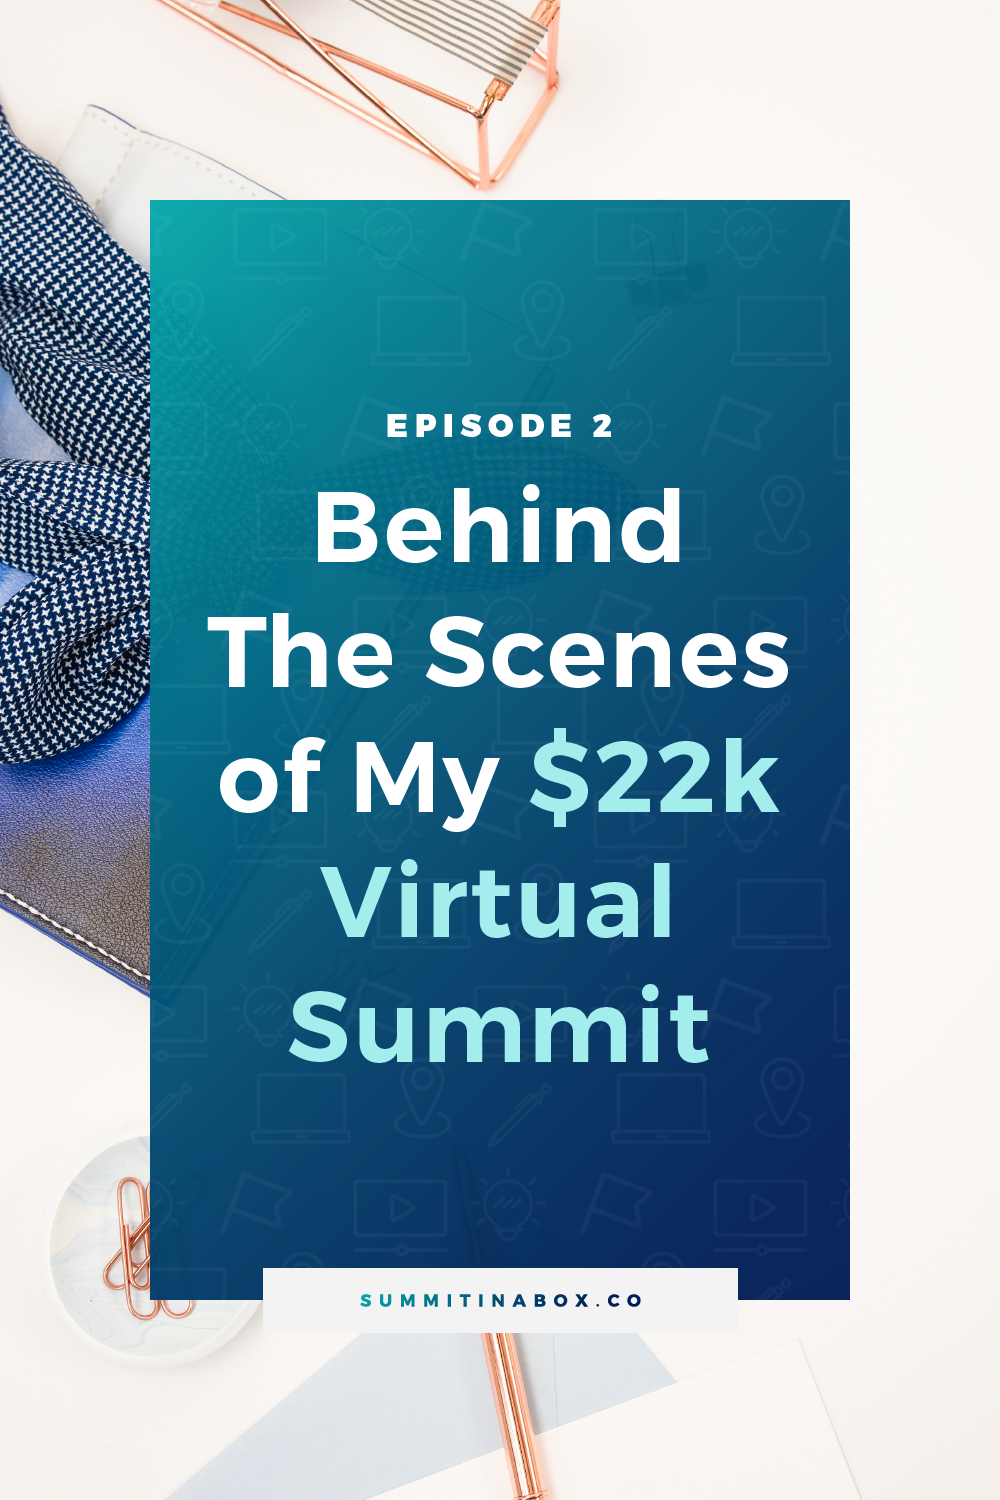 Get a behind the scenes look at my latest virtual summit results. We'll everything from numbers, lessons learned, and more.